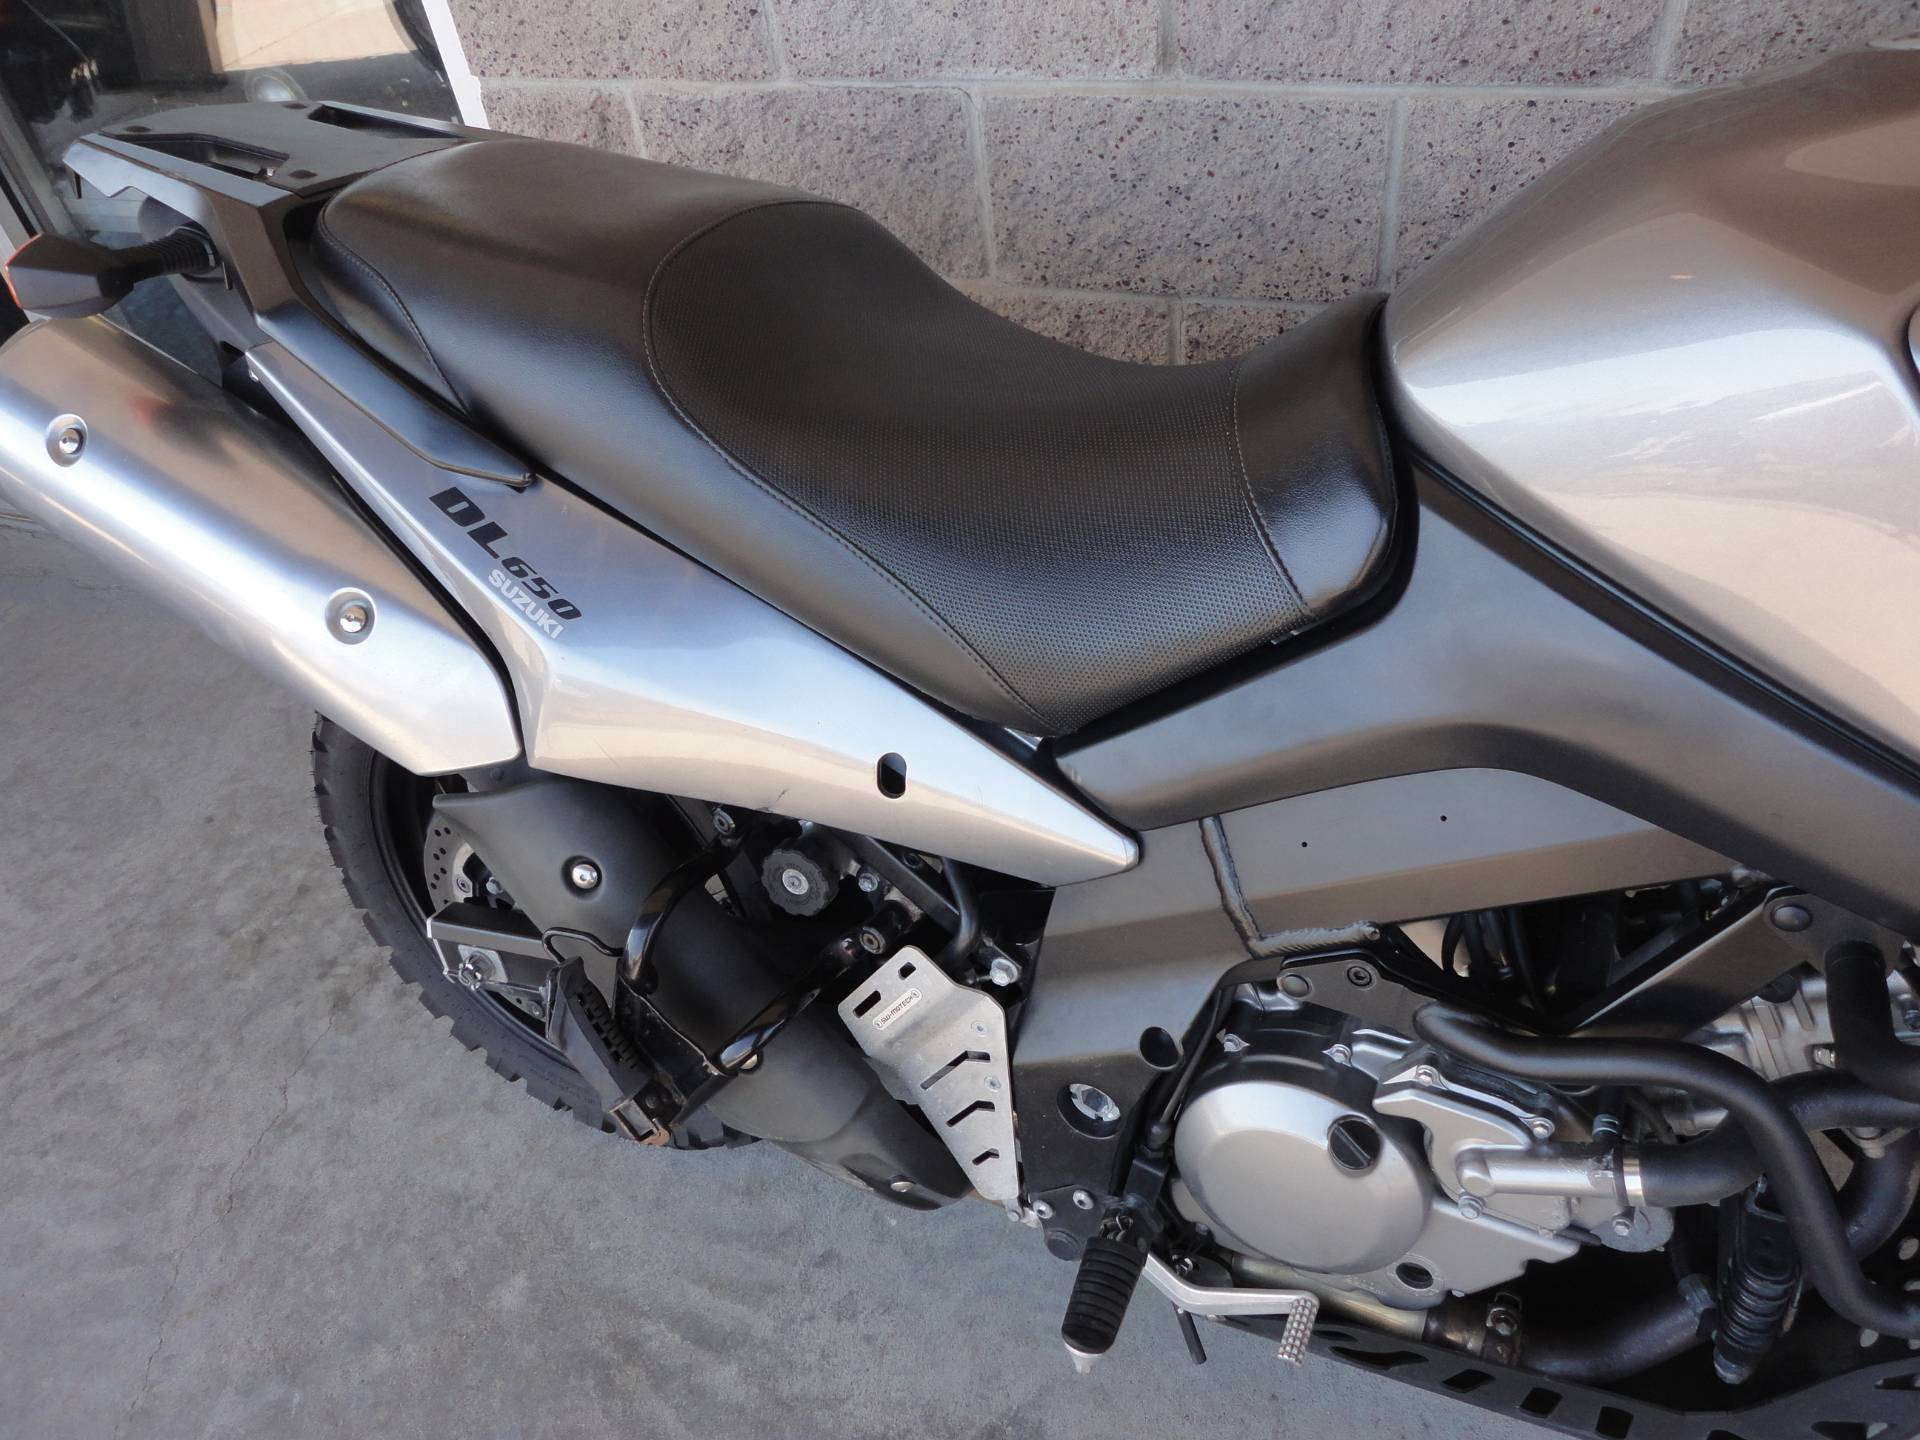 2007 Suzuki V-Strom® 650 in Denver, Colorado - Photo 22